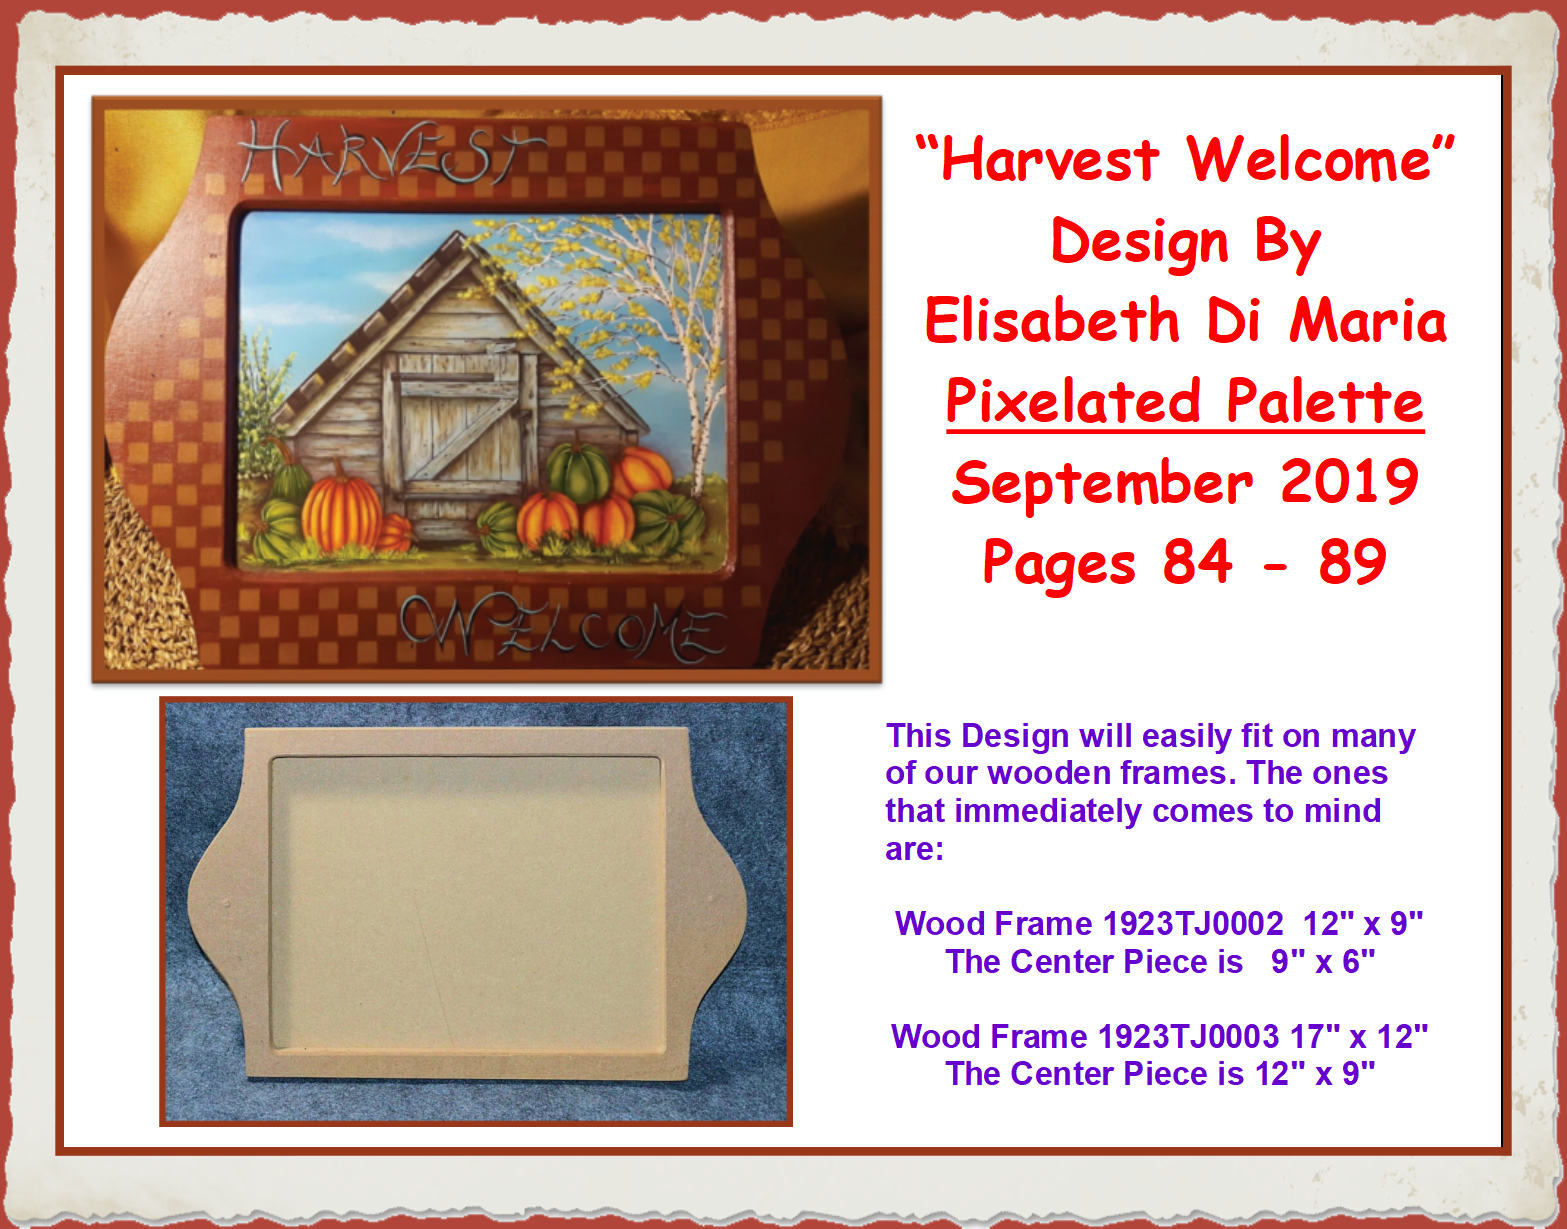 harvest-welcome-elisabeth-di-maria-pixelated-palette-201909-boarder.jpg